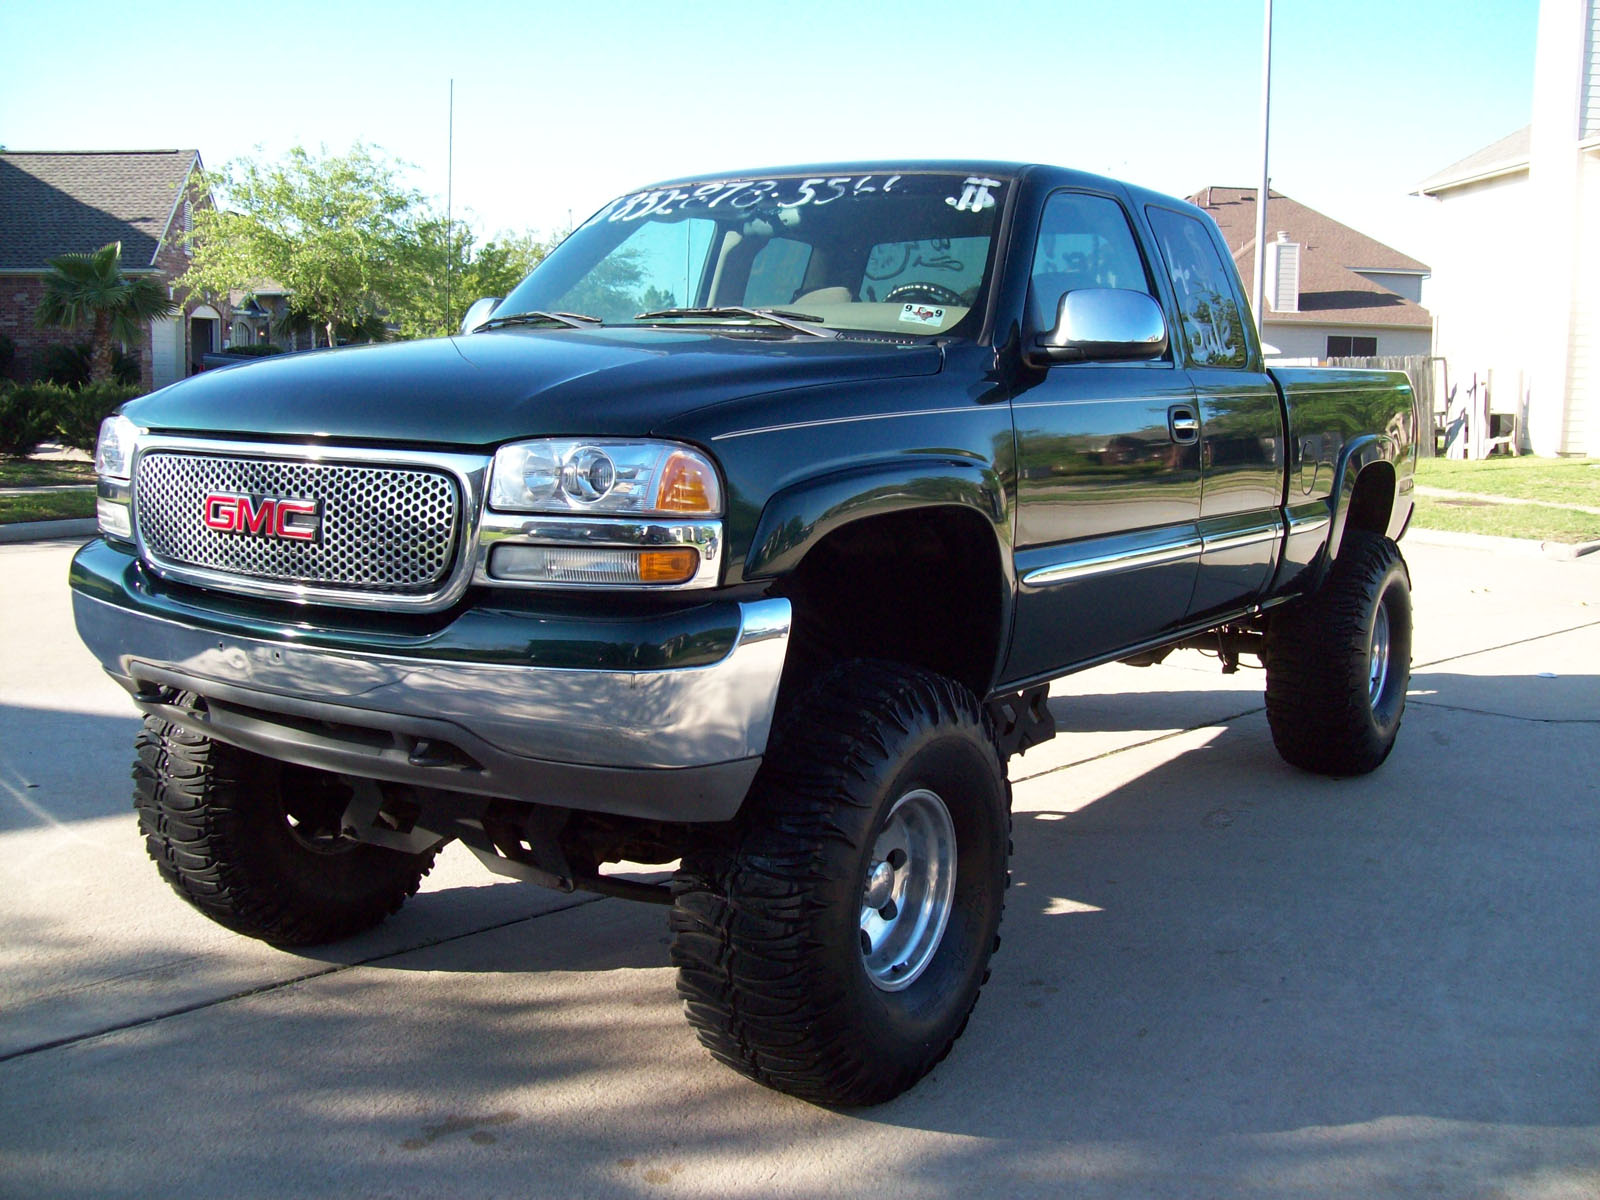 GMC 4x4 Trucks for Sale